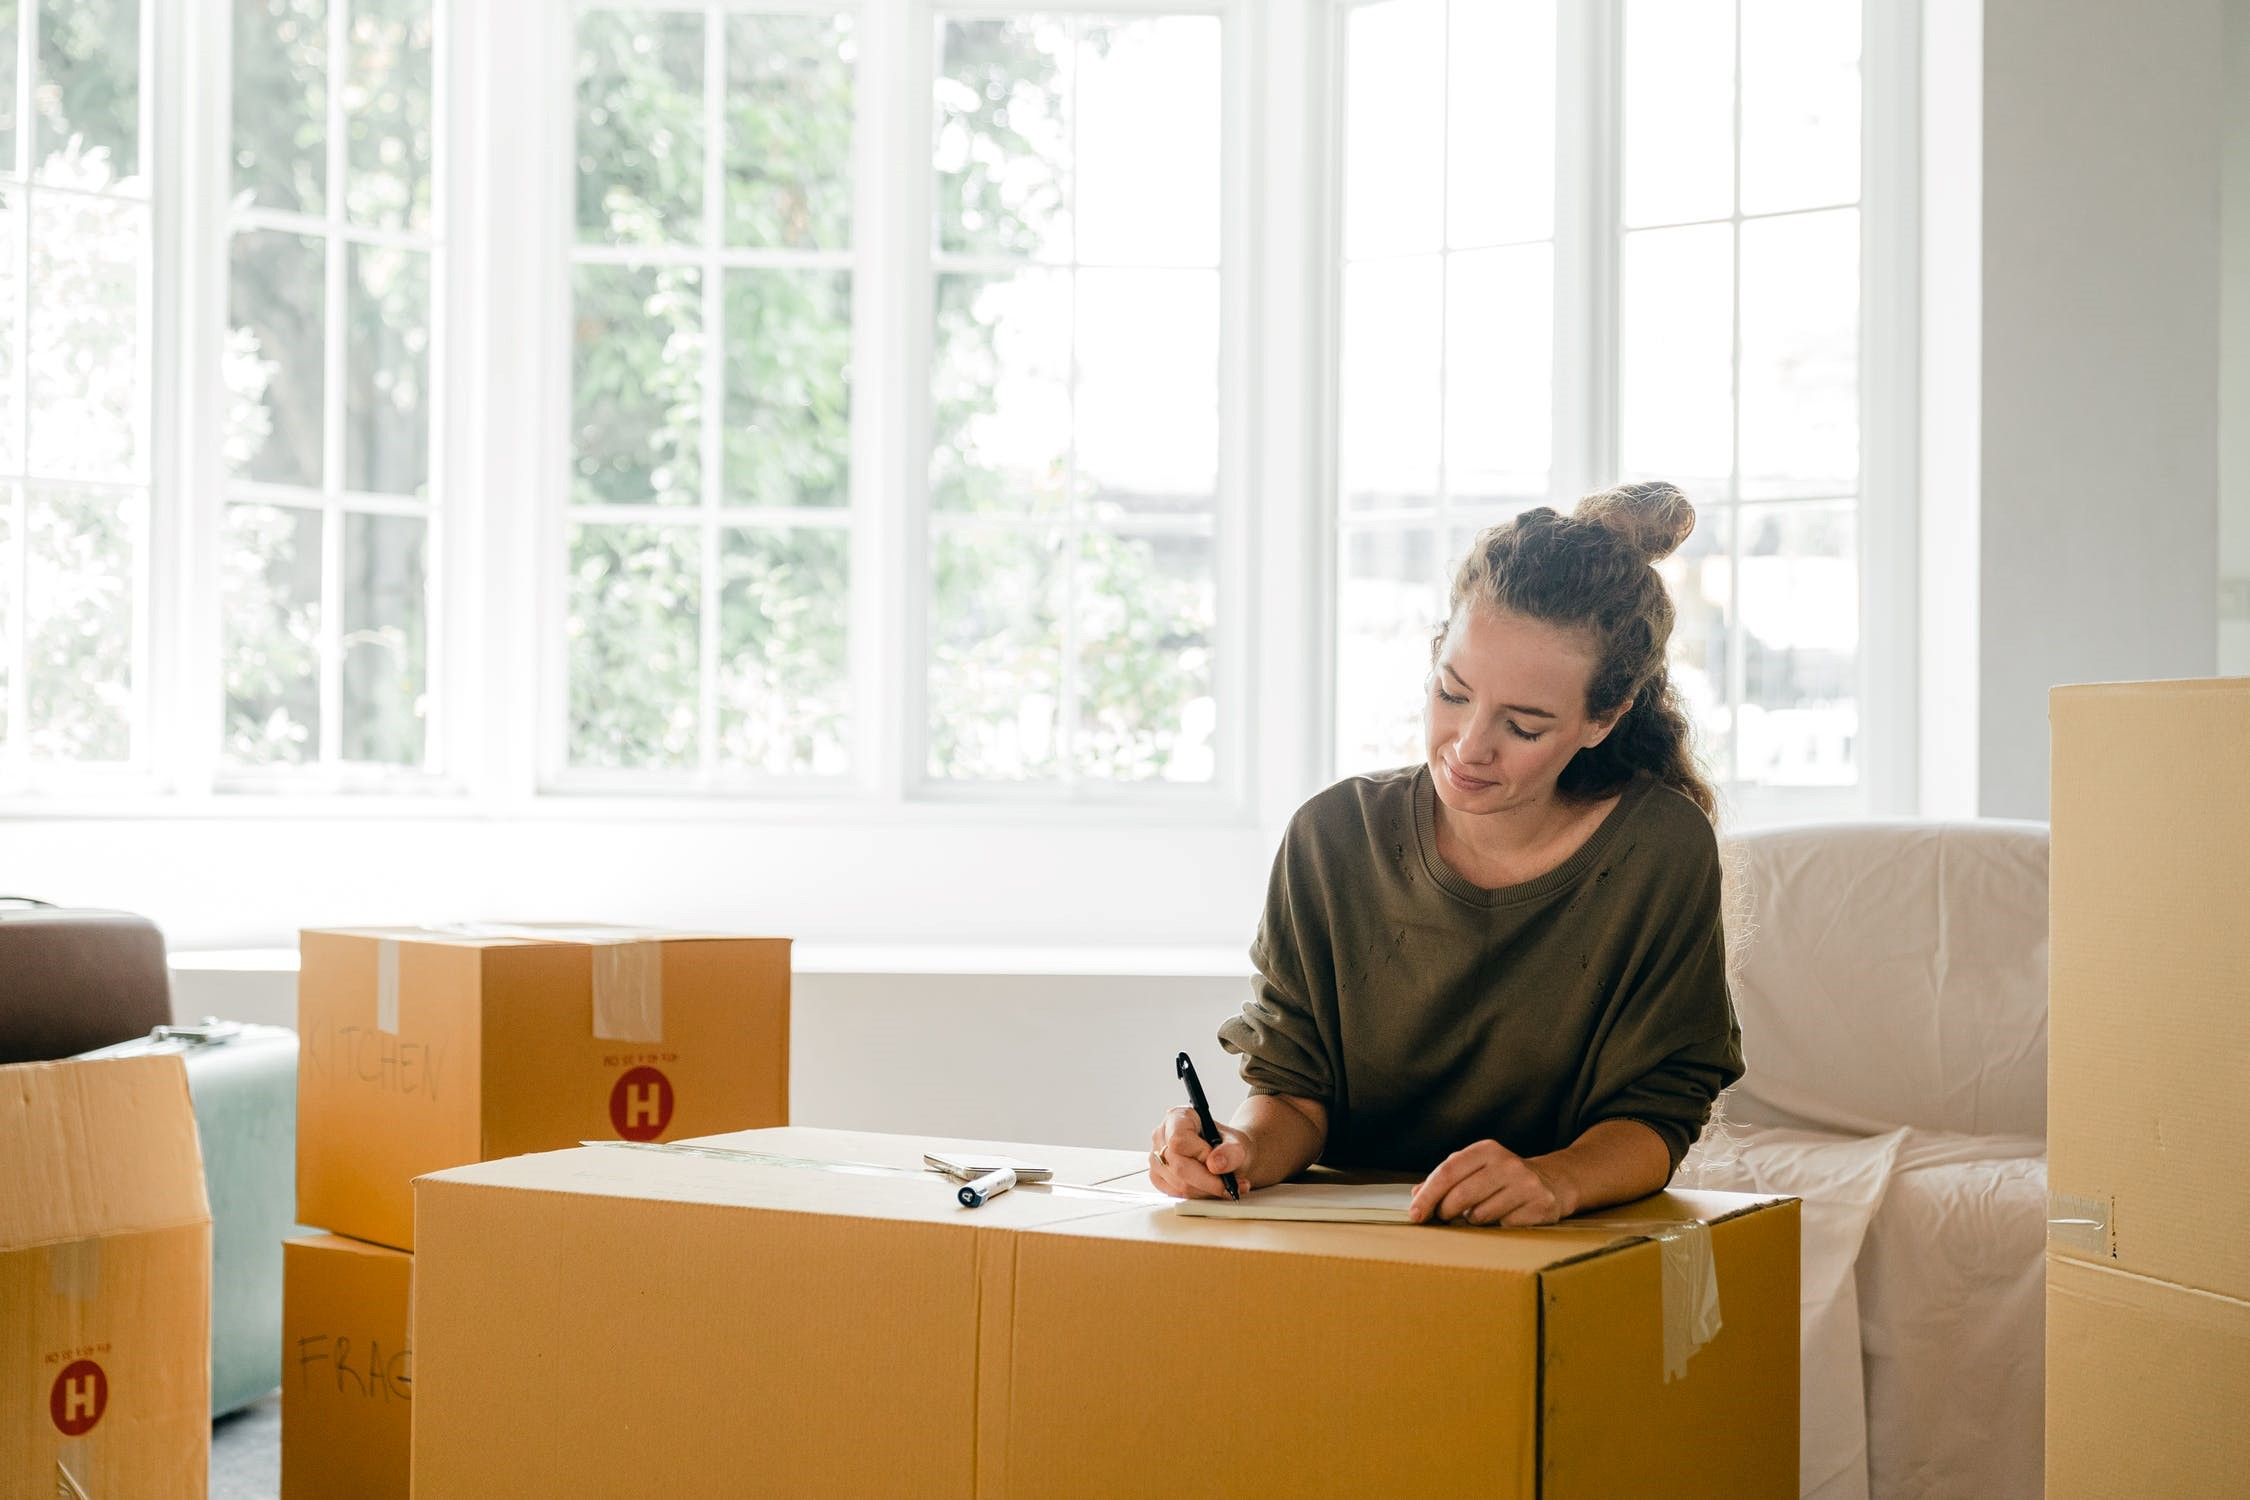 A woman writing on her notepad amid moving house